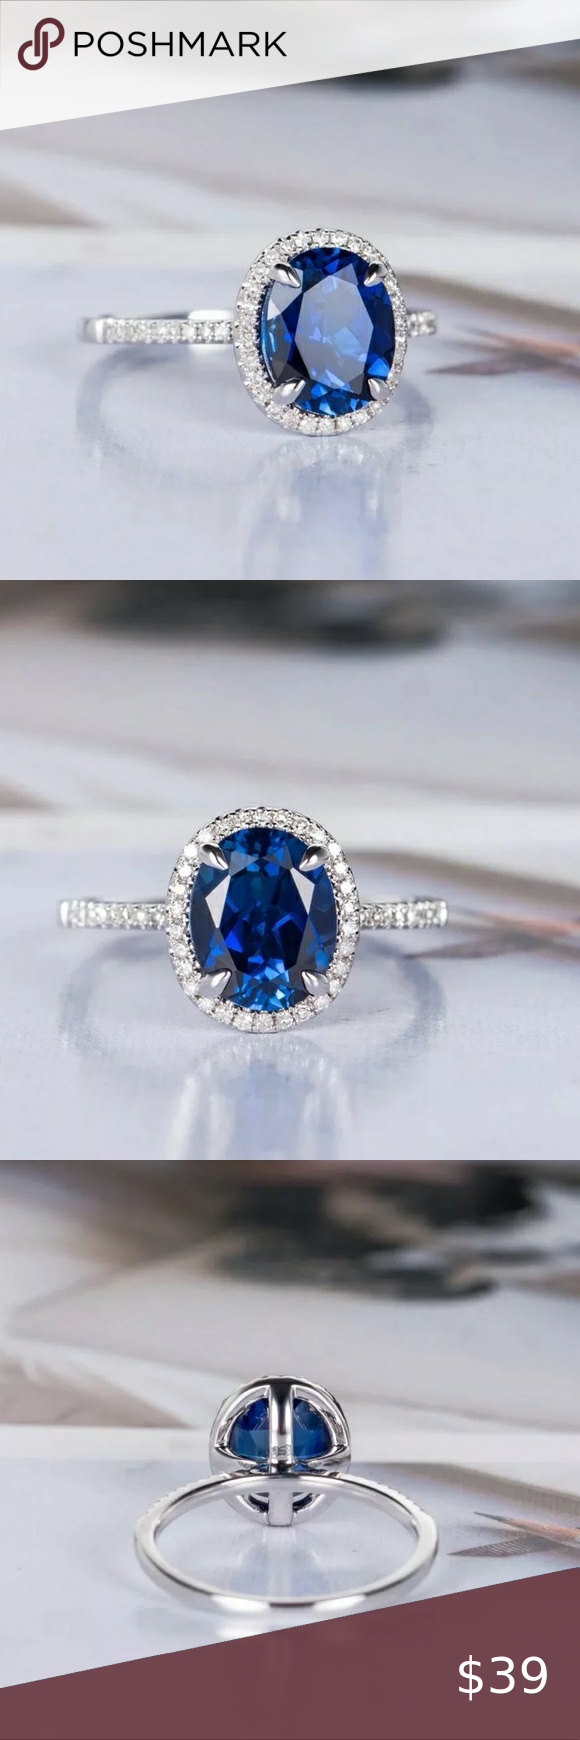 Blue And White Sapphire Wedding Ring In 2020 14k Gold Wedding Ring White Sapphire Ring Wedding Sapphire Wedding Rings